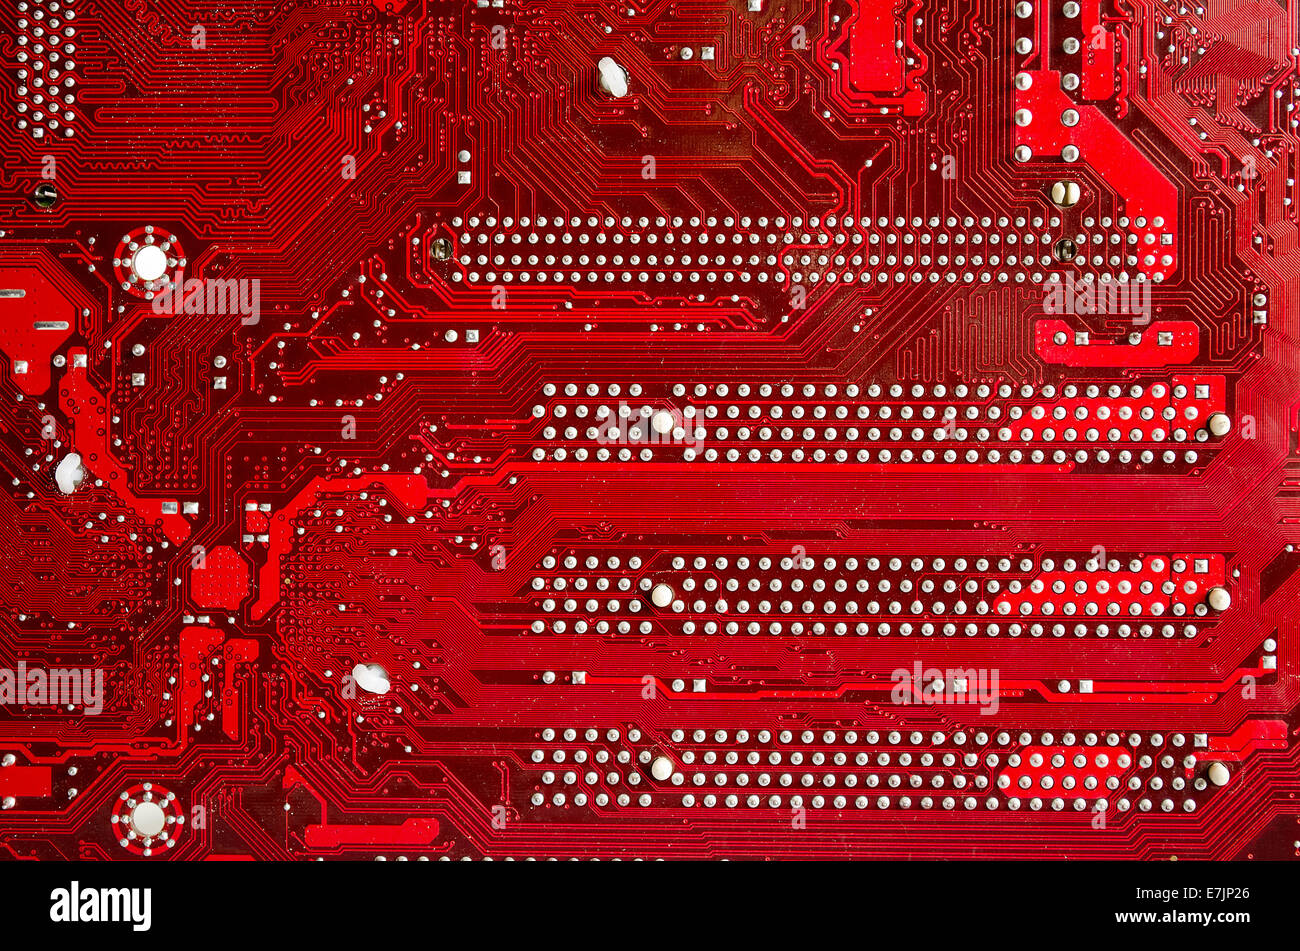 Circuit Board Red Stock Photos Images Alamy Royalty Free Image Of Background From Close Up Closeup A Printed